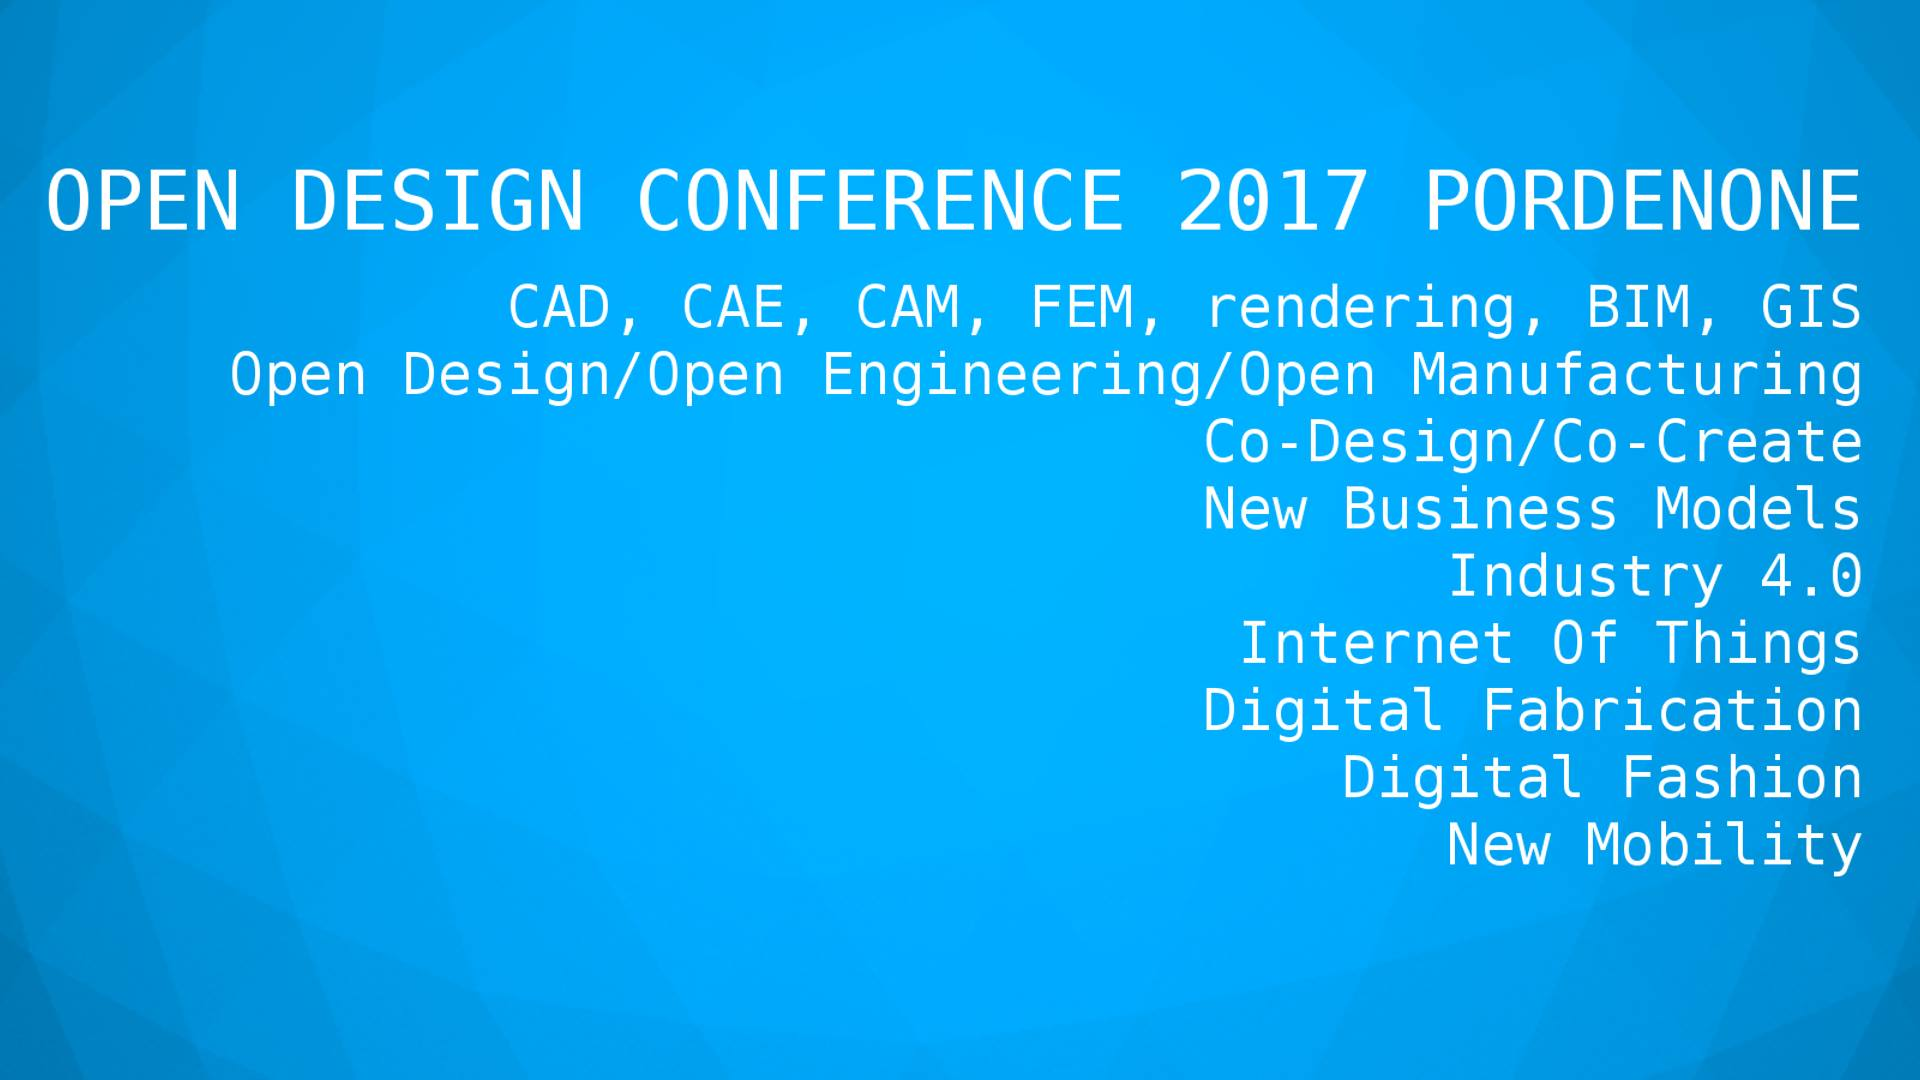 Open Design Conference 2017